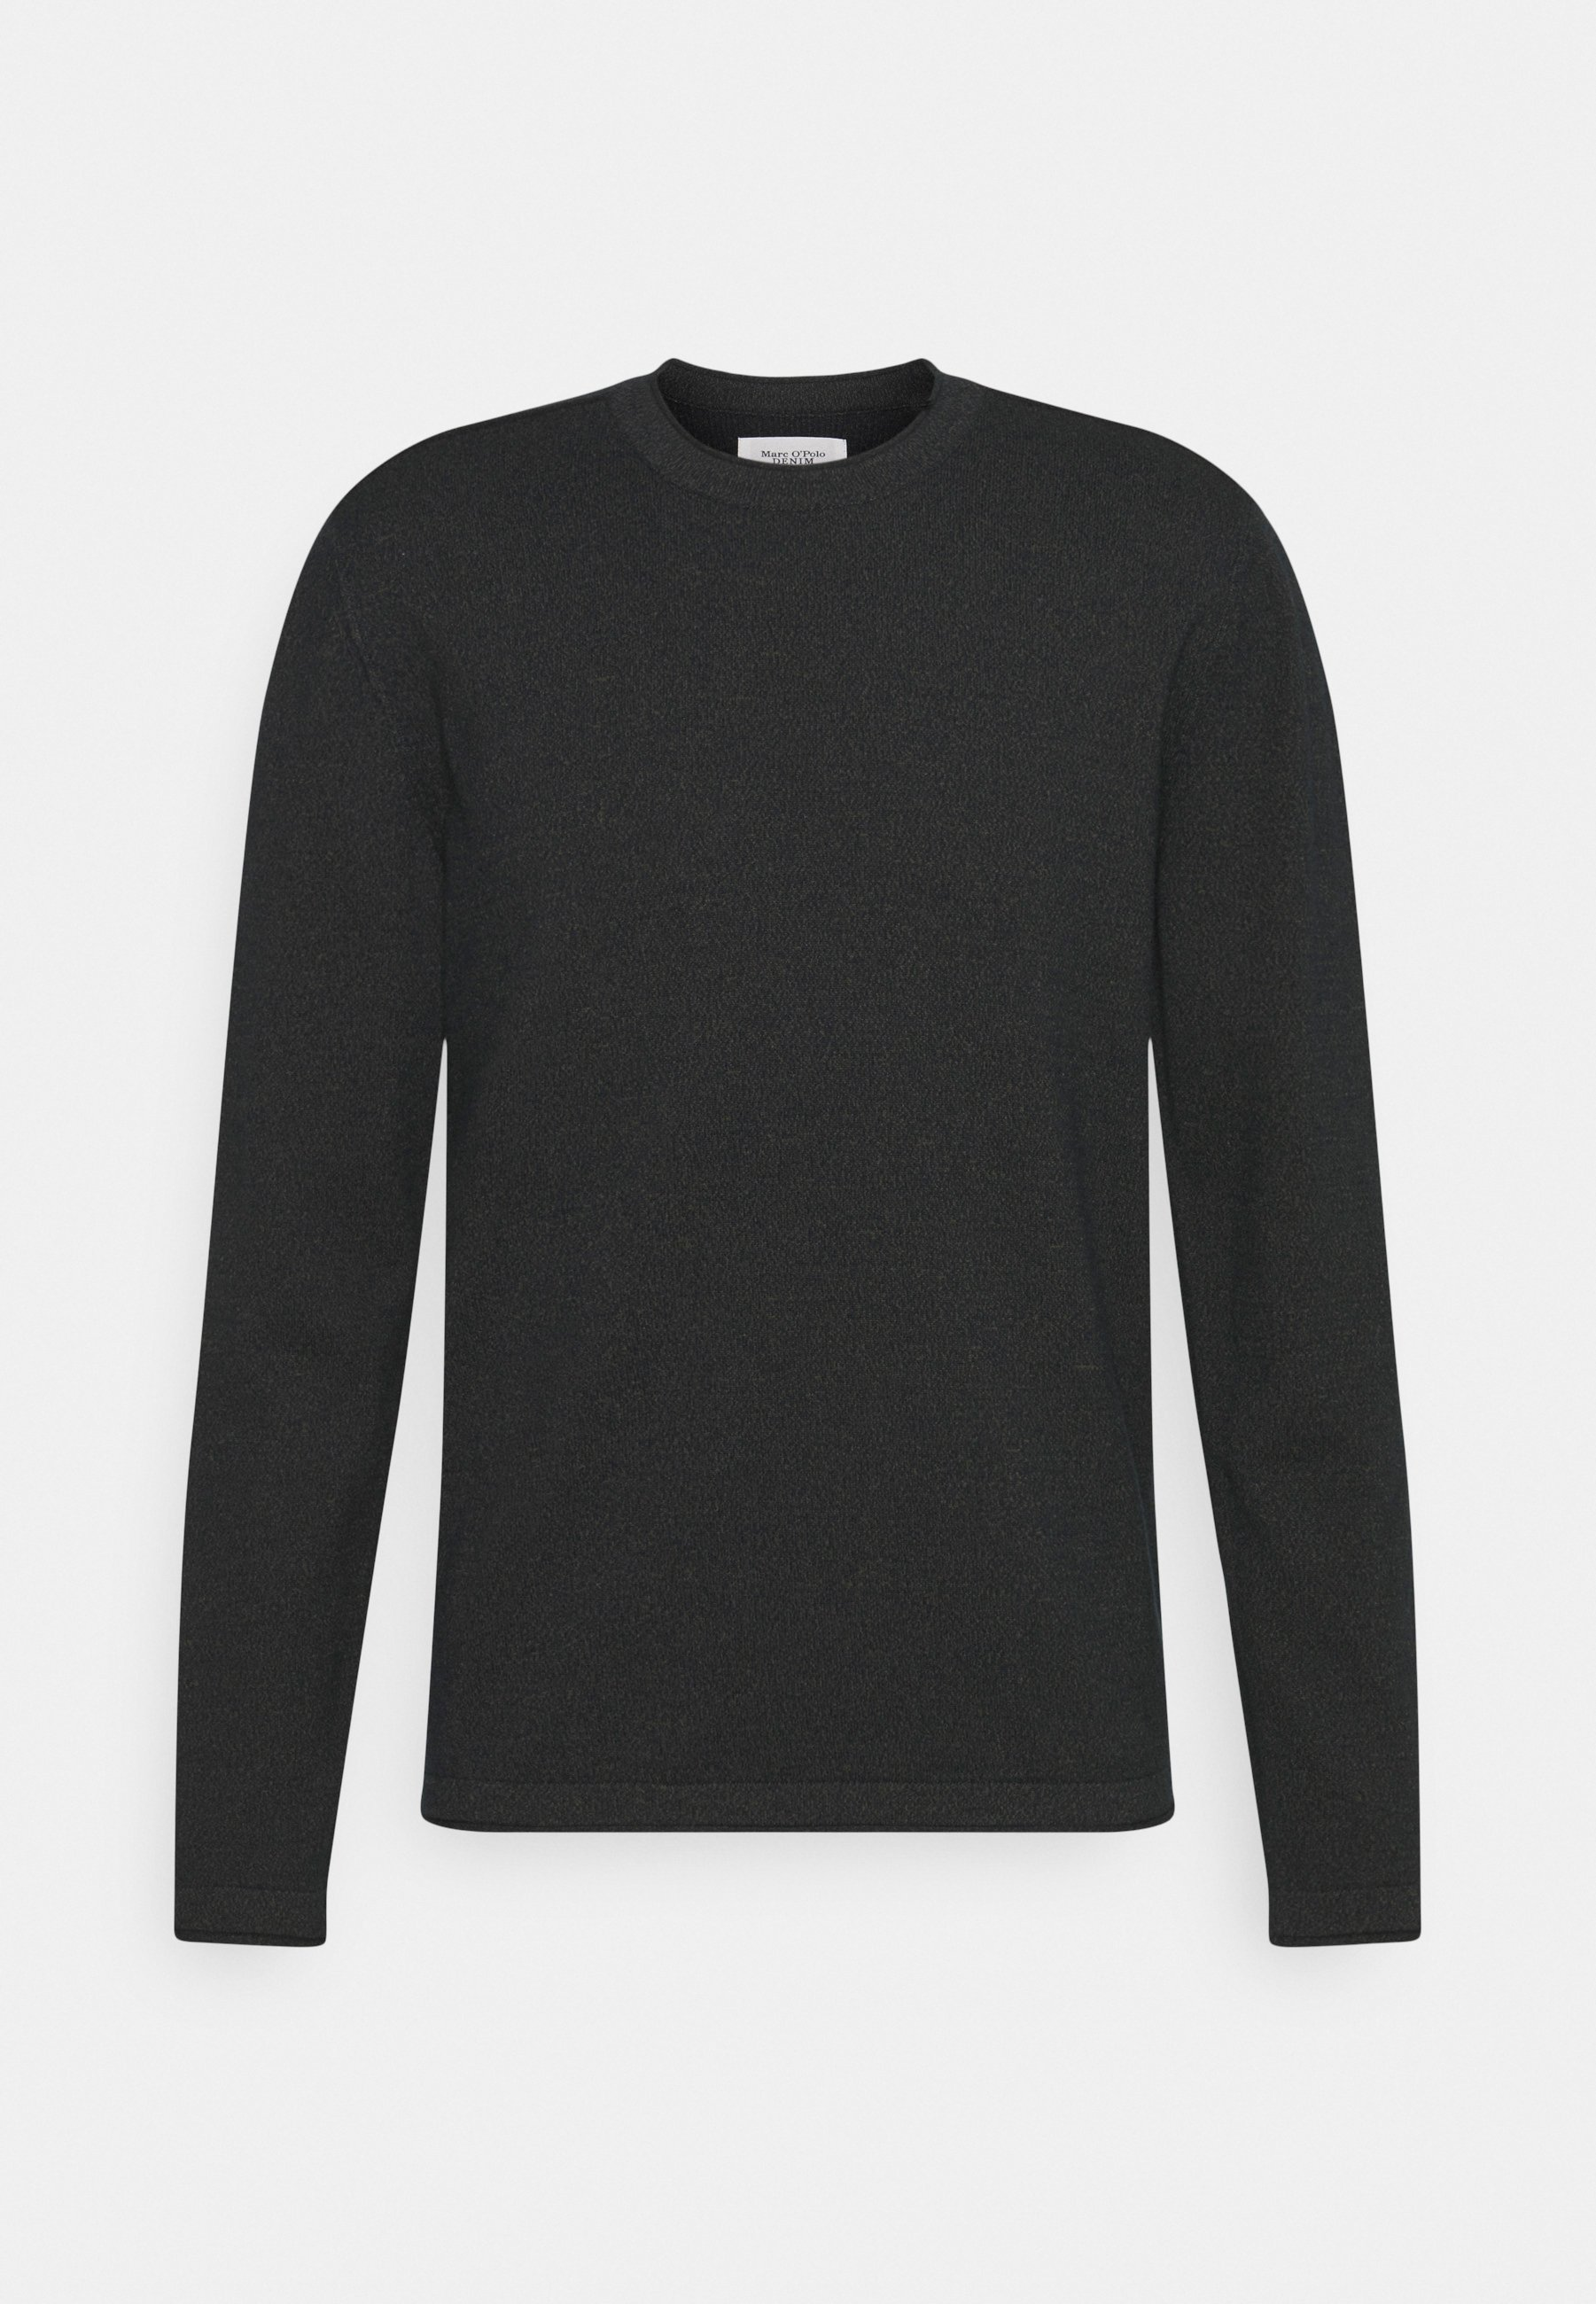 Homme LONG SLEEVE CREW NECK STRUCTURE CHANGE ON THE BACK - Pullover